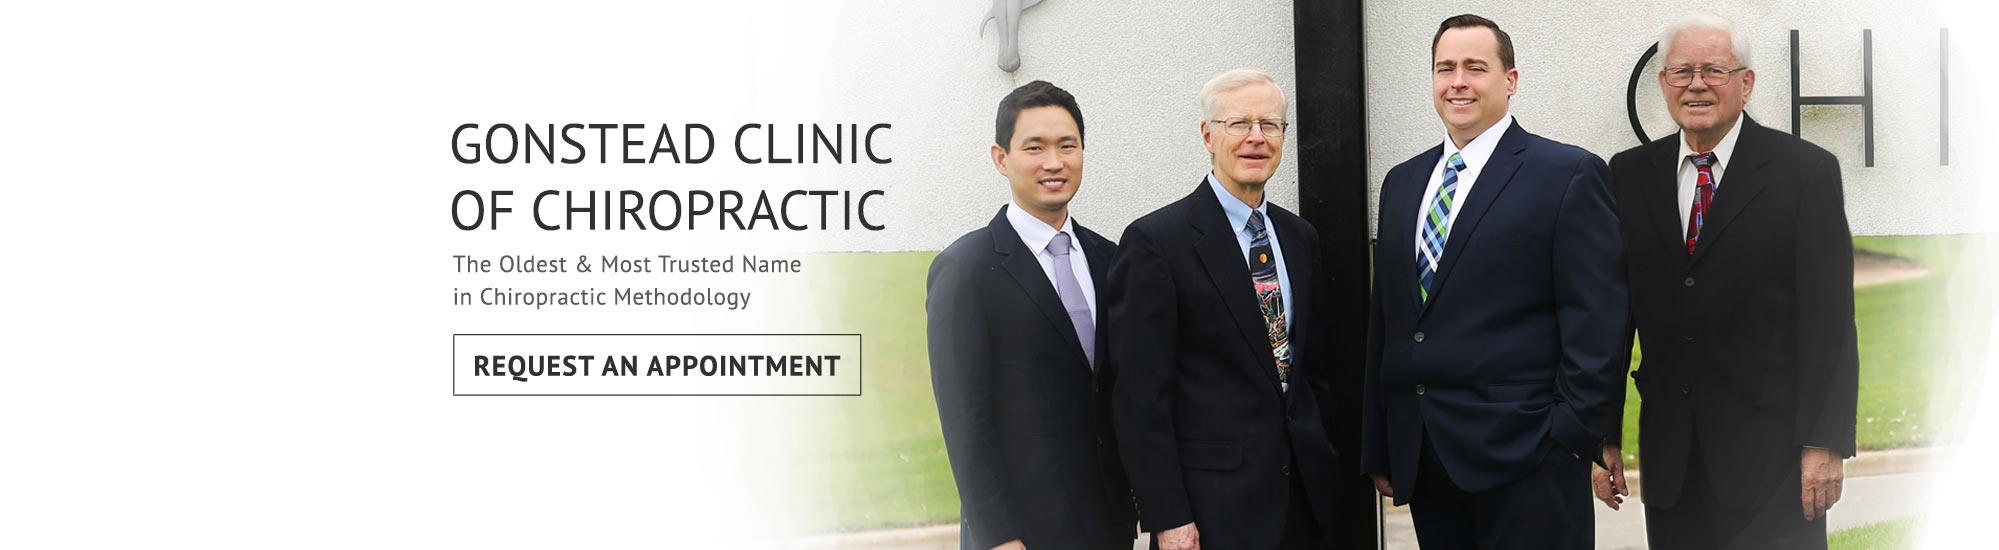 Team at Gonstead Clinic of Chiropractic